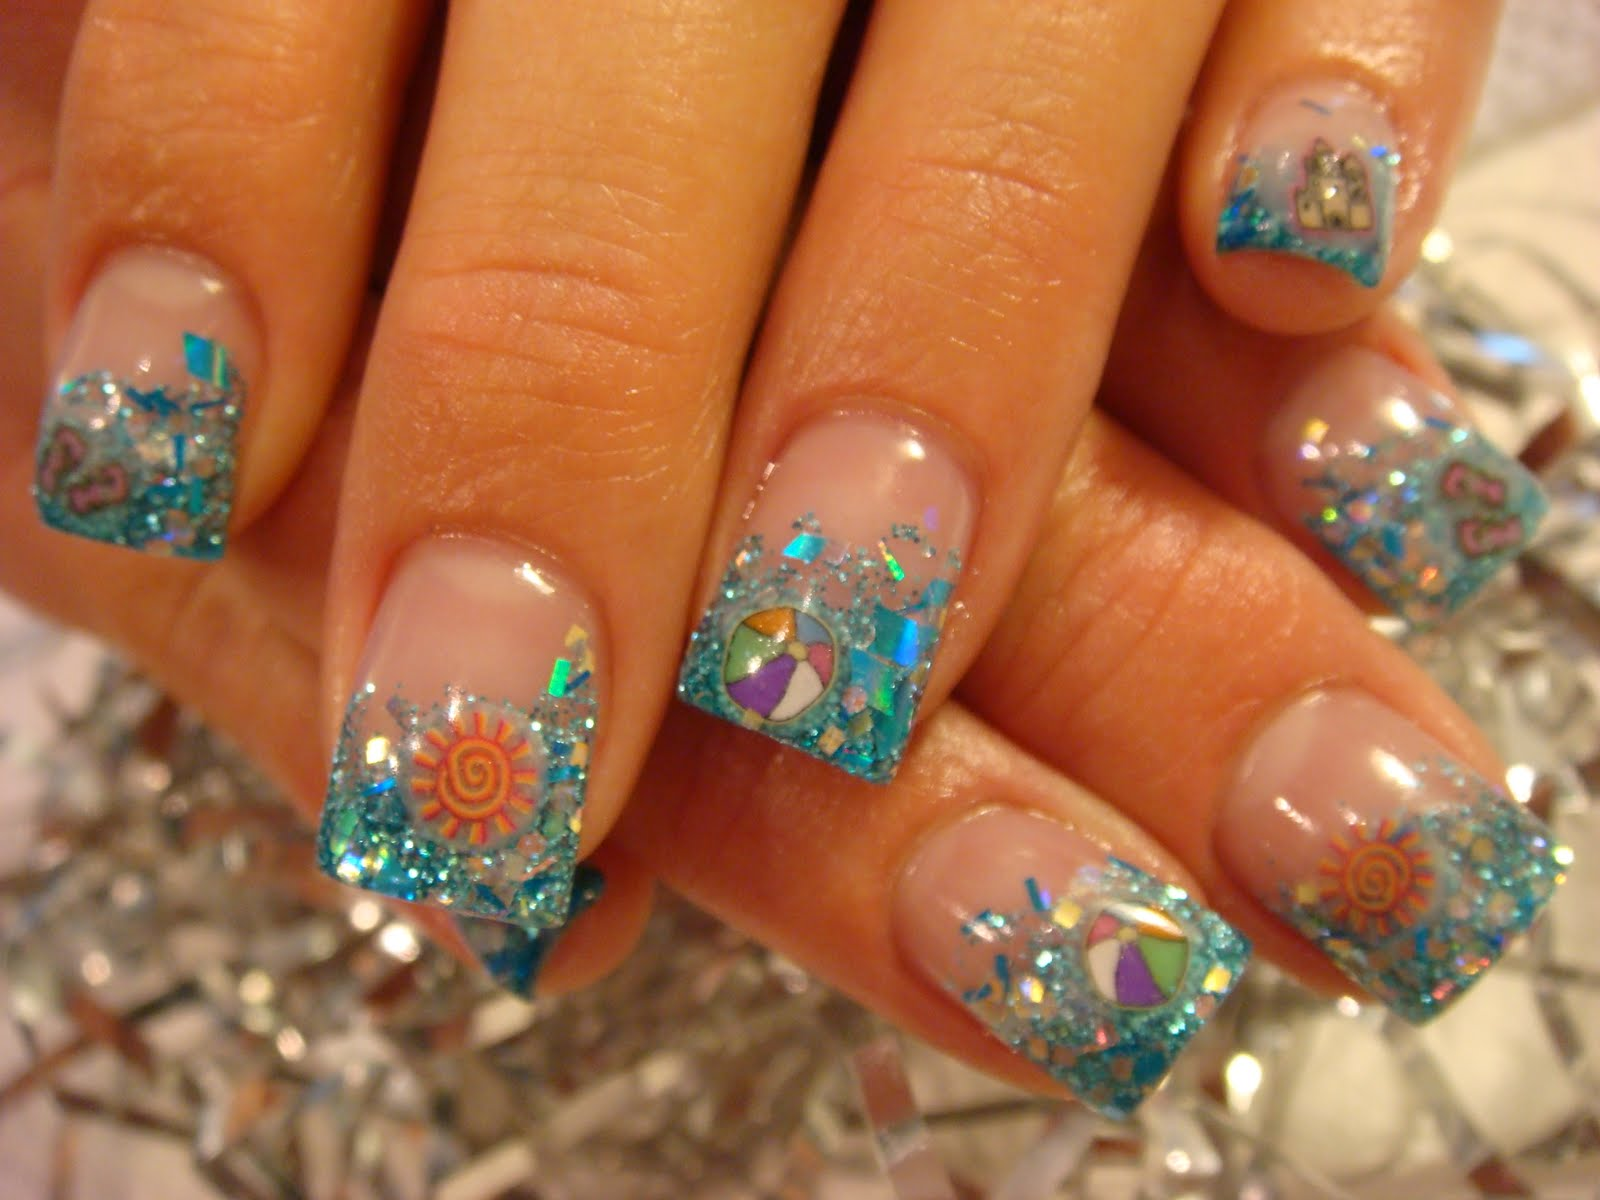 August Amazing Nail Designs Show: Nail Art: August 2011